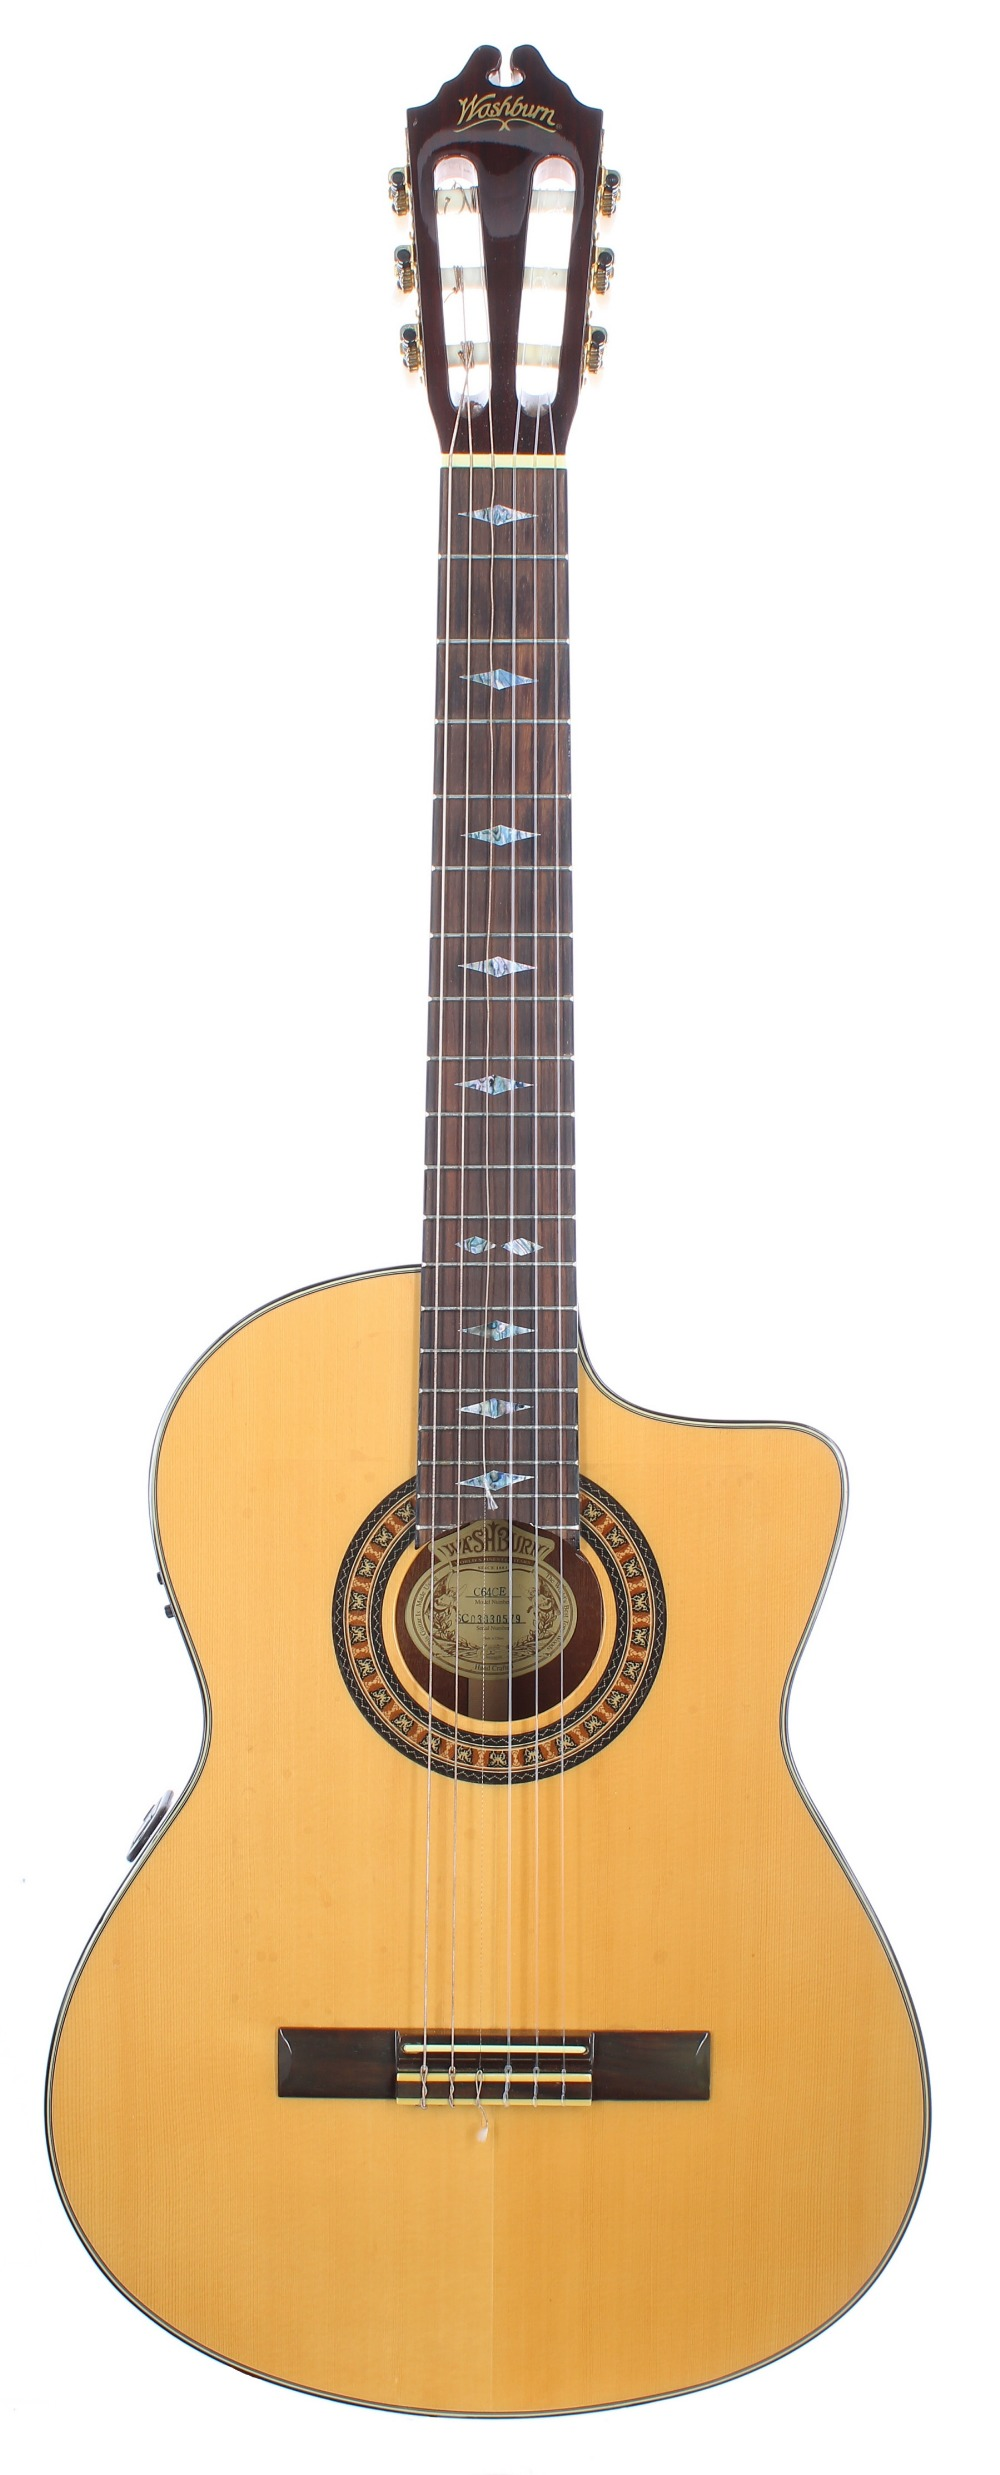 Washburn C64CE electro-classical guitar, made in China; Back and sides: mahogany, generally good